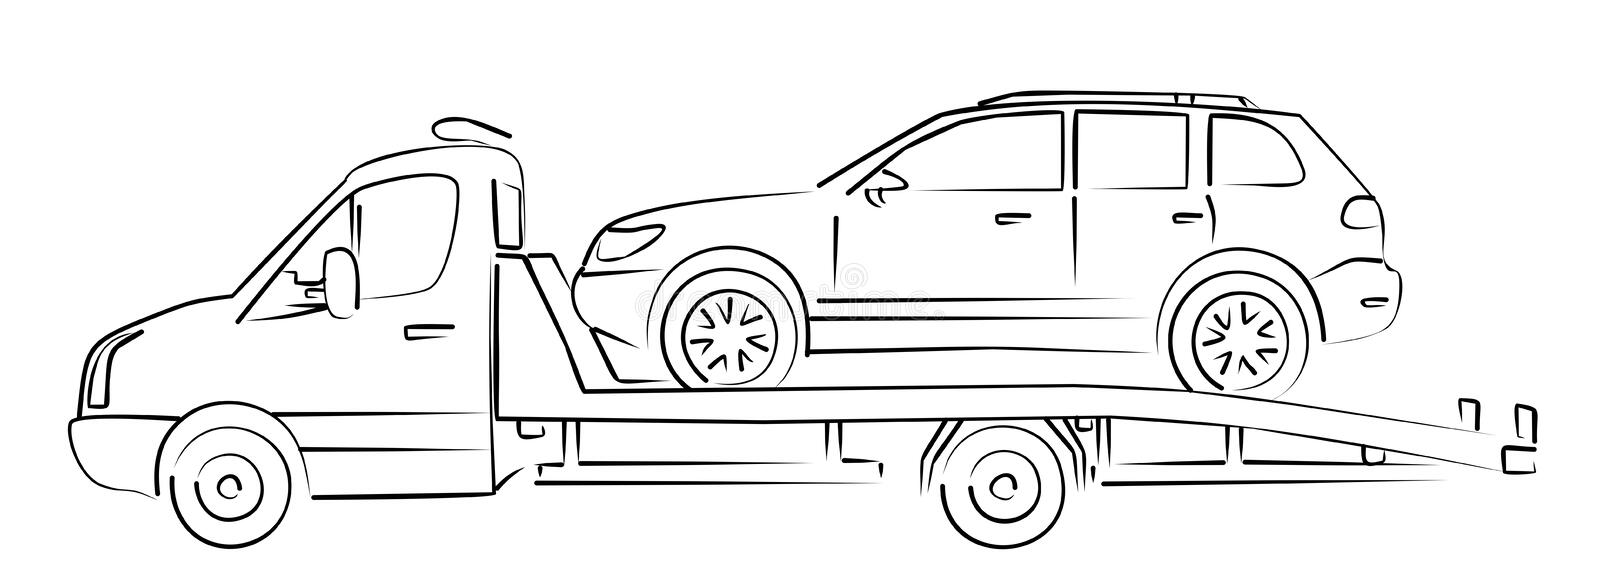 Tow truck Sketch. stock illustration